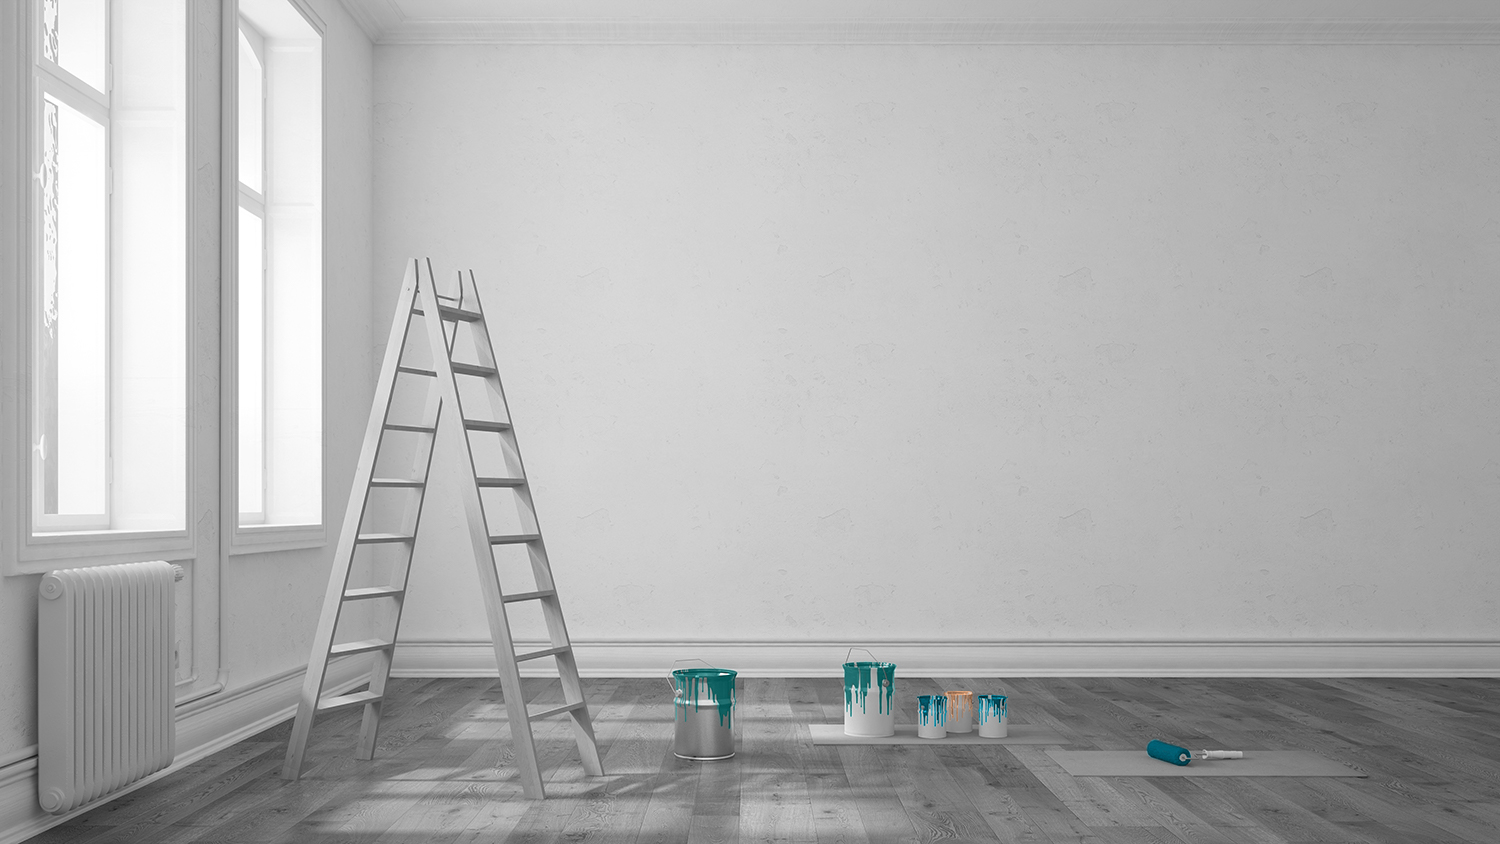 photo of room with ladder and paint buckets ready for renovation work